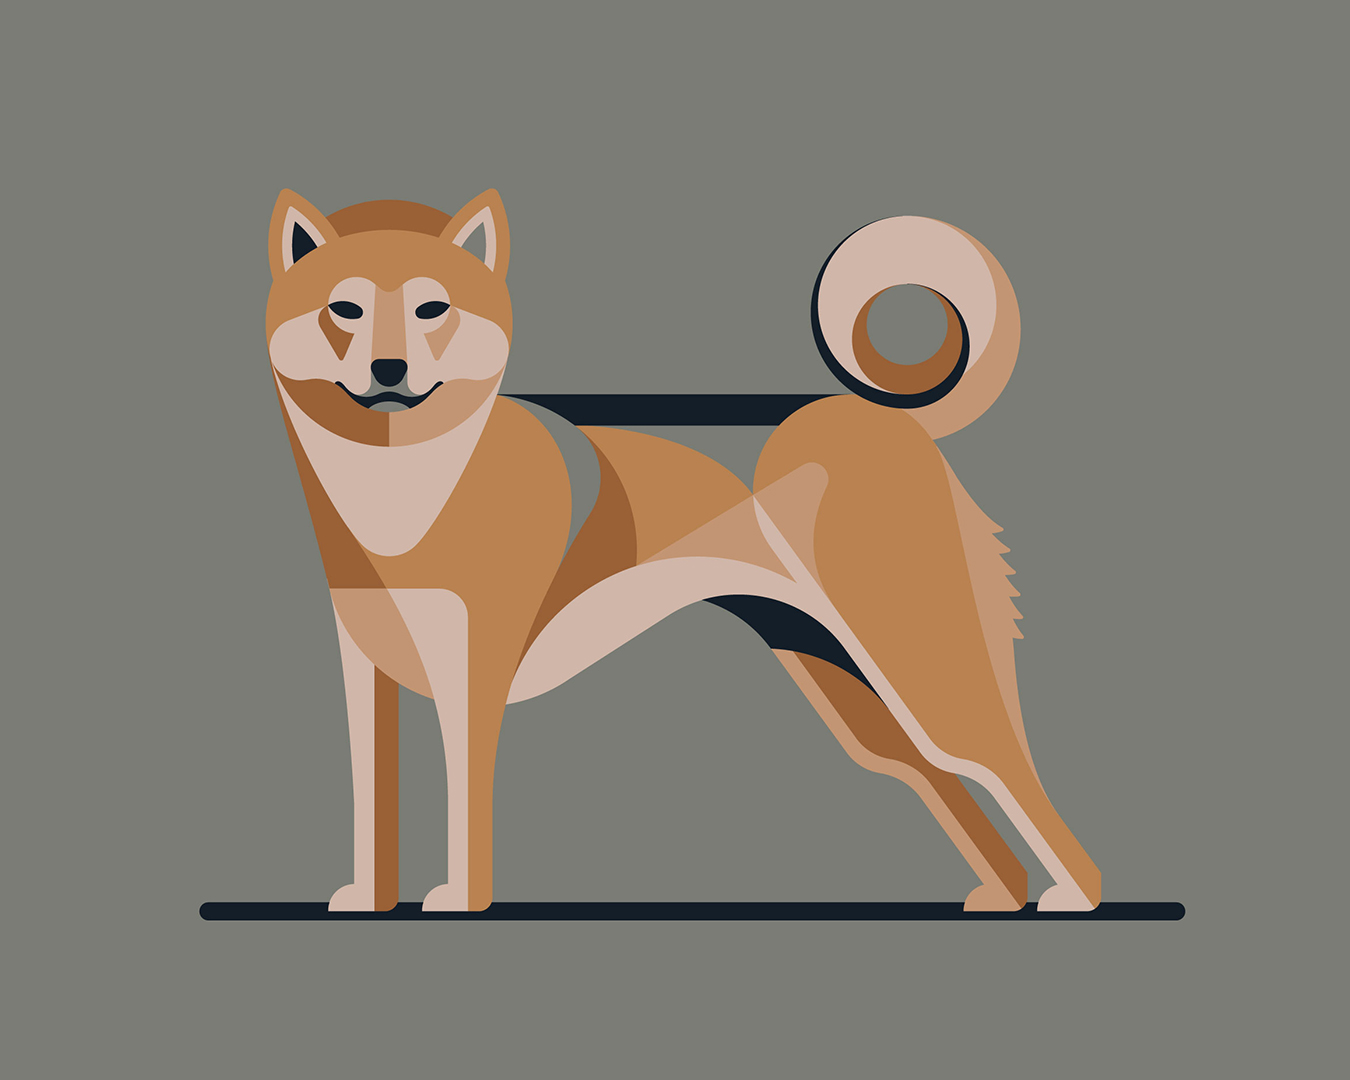 Shiba Inu Illustration by DKNG